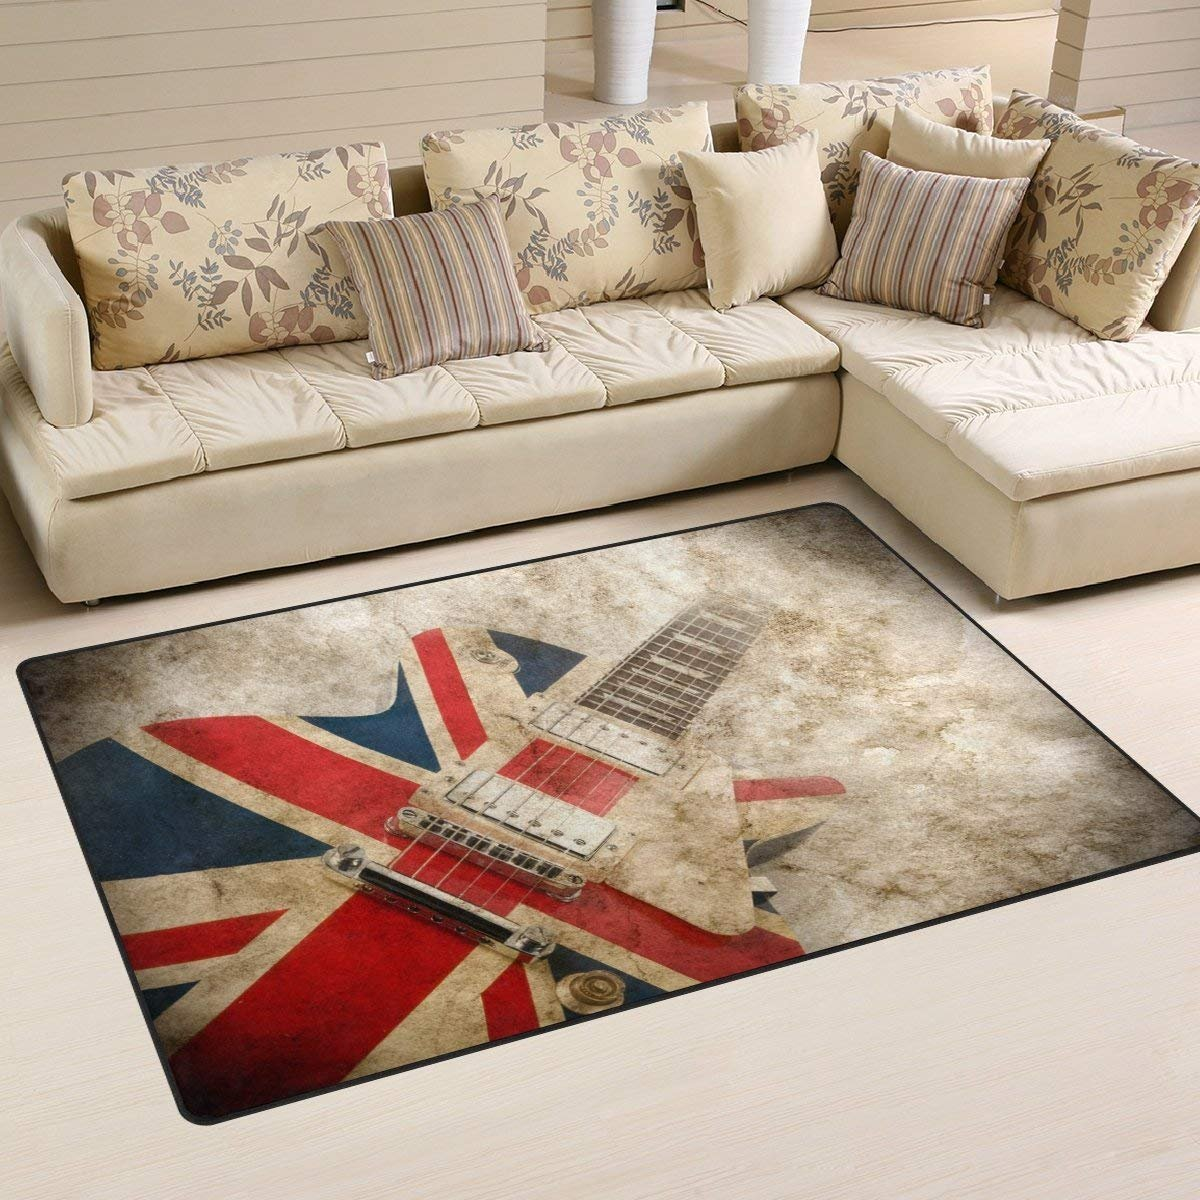 Grunge Union Jack British Guitar Area Rug Rugs Non-Slip Floor Mat Doormats Living Room Bedroom 16 x 24 inches Cuitae